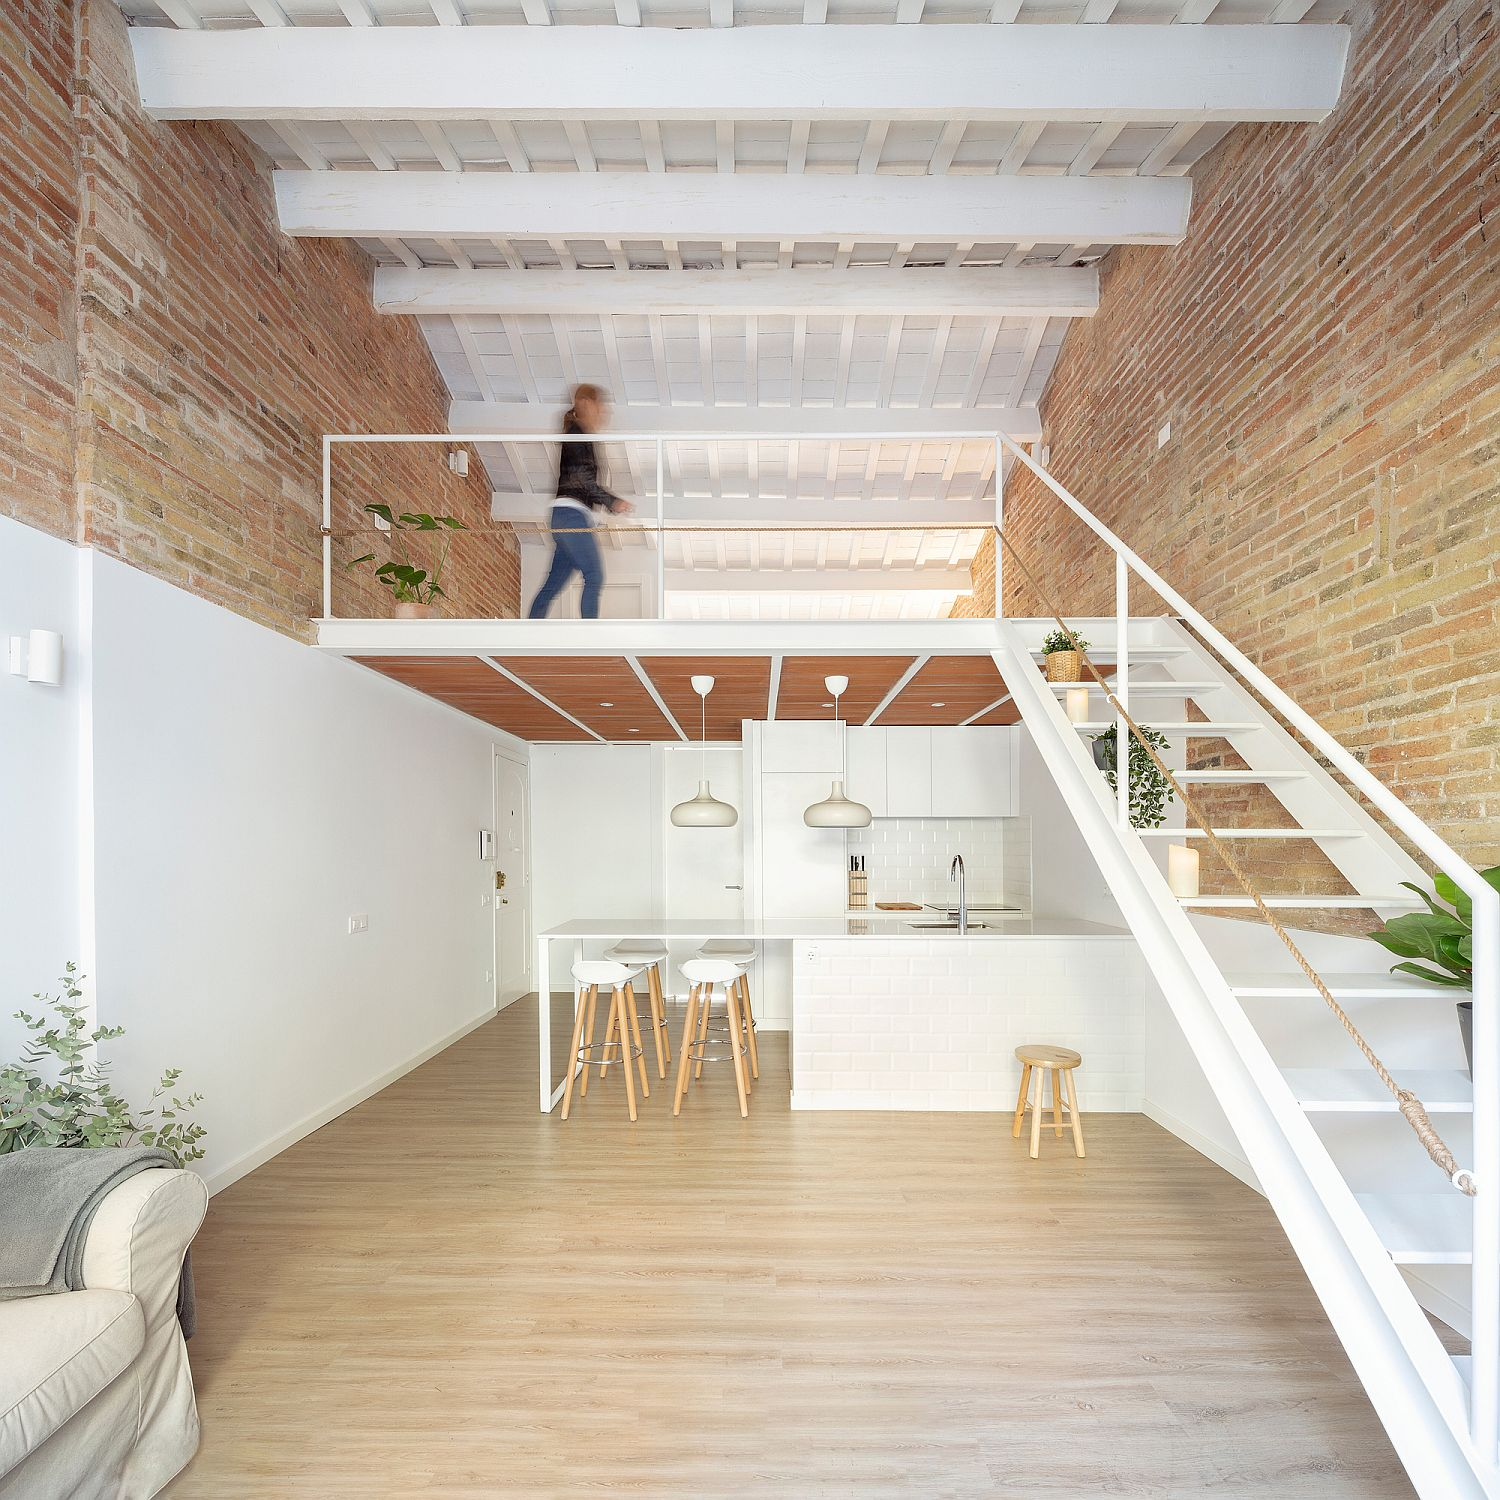 Mezzanine level of the small Barcelona apartment adds precious additional space inside the tiny setting